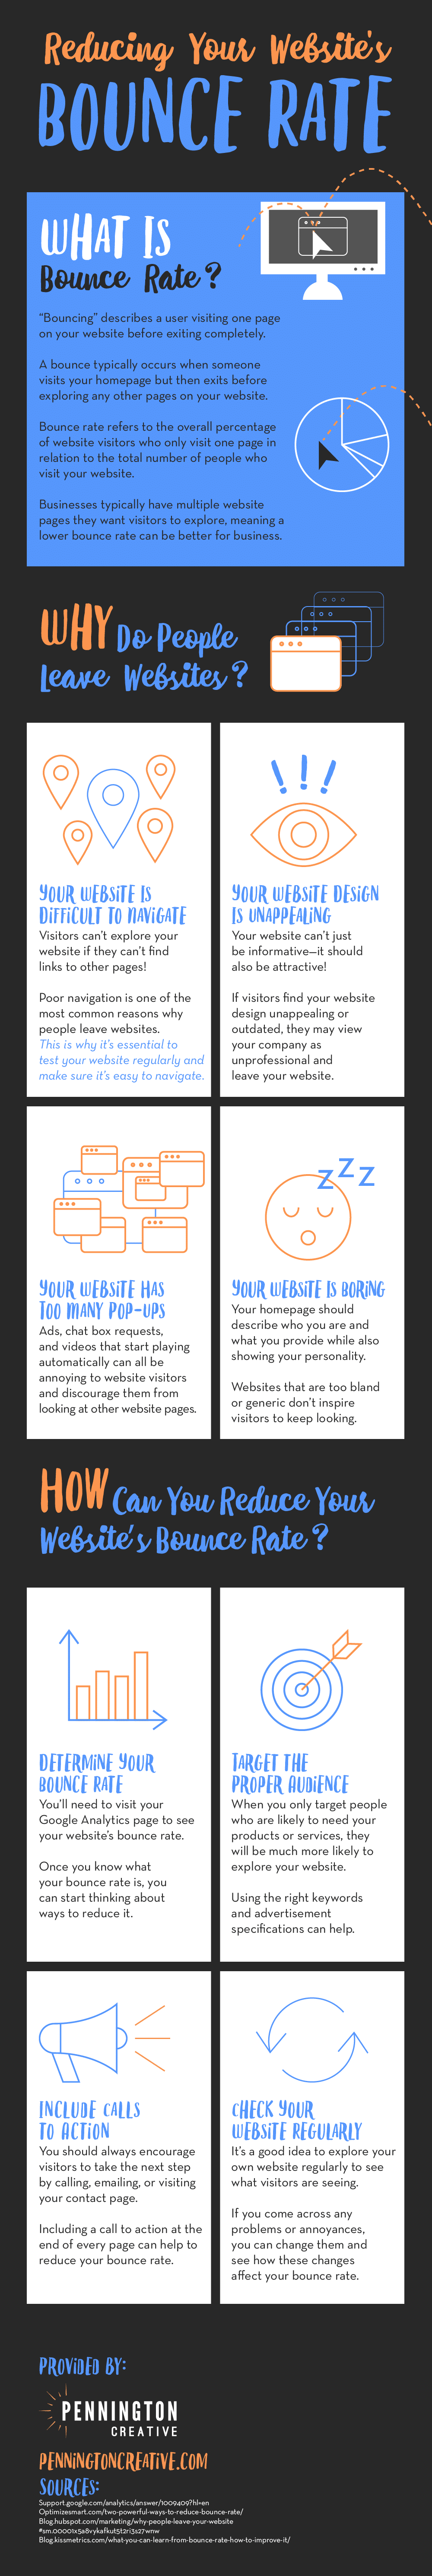 Infographic with tips for reducing business websites' bounce rate.